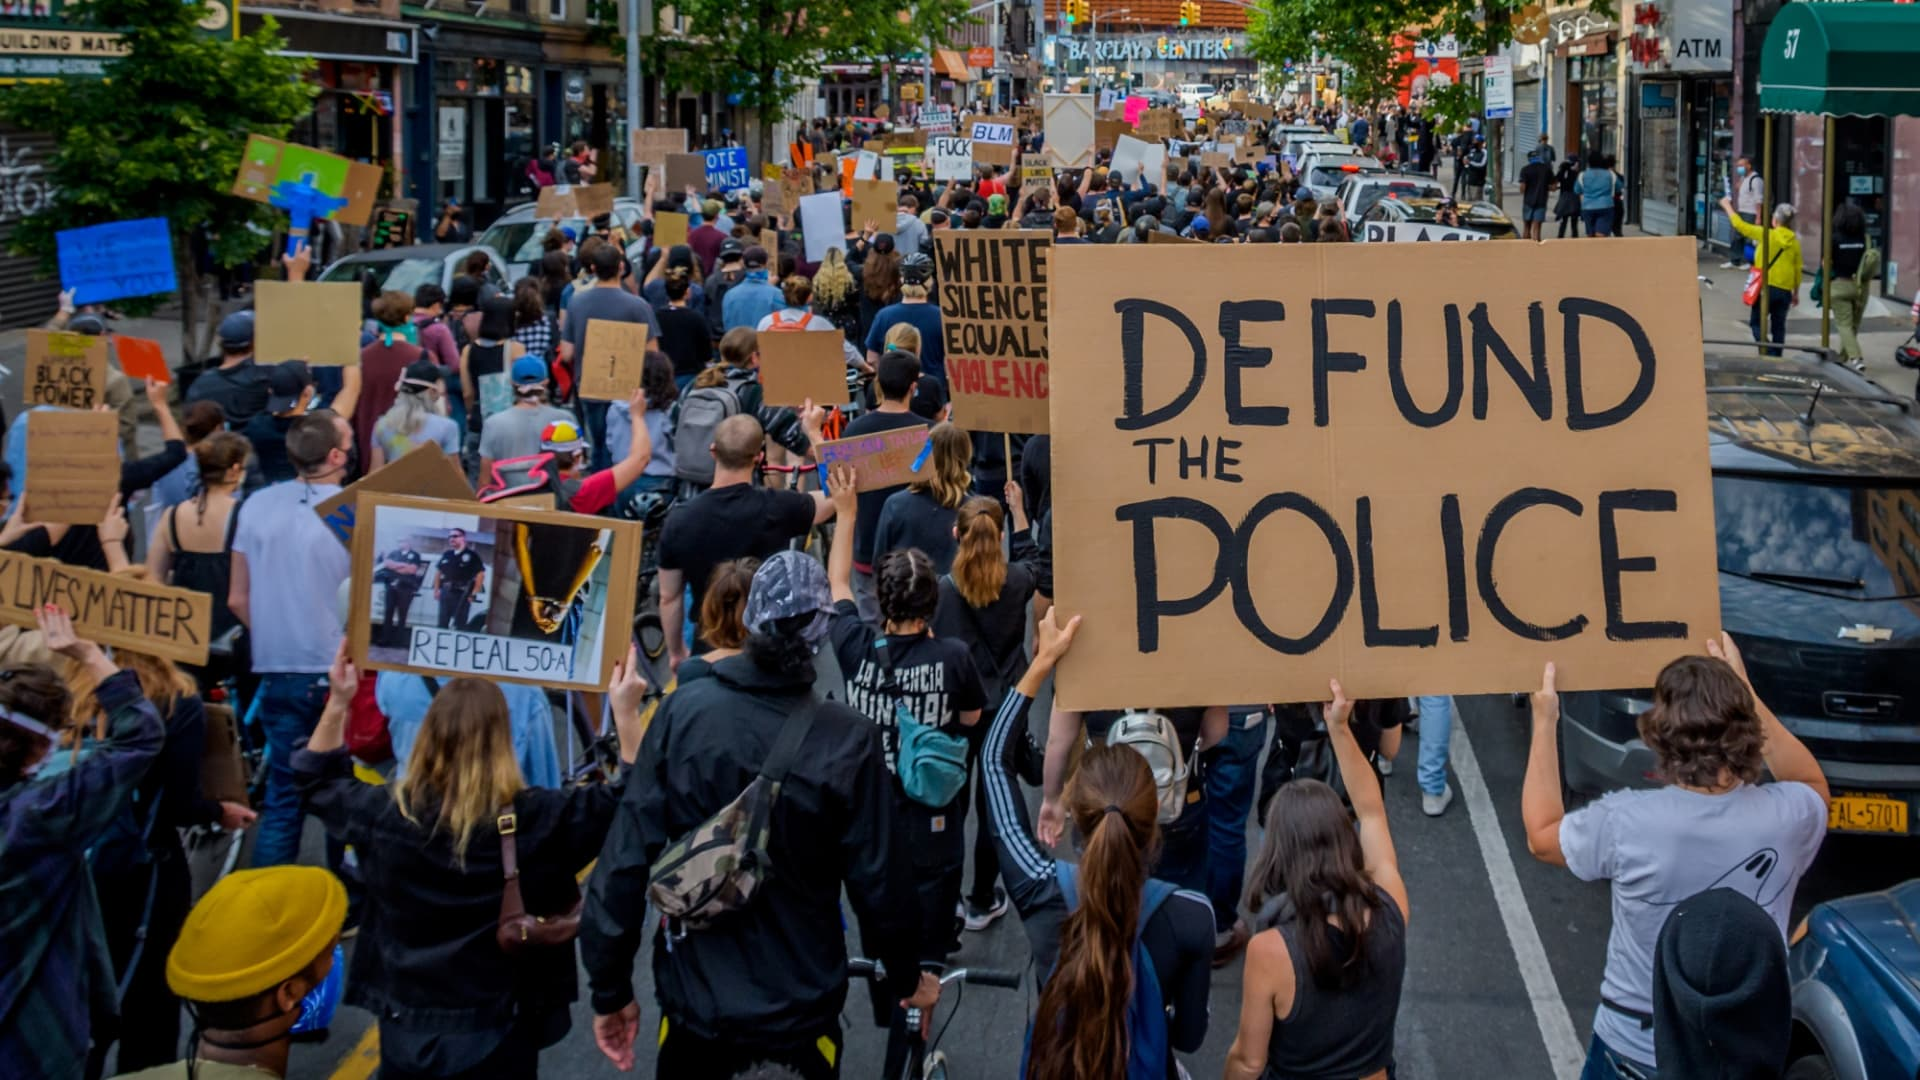 A participant holding a Defund The Police sign at the protest. Thousands of protesters filled the streets of Brooklyn in a massive march to demand justice for George Floyd, killed by Officer Derek Chauvin and to make a loud call for the defunding of the police force.